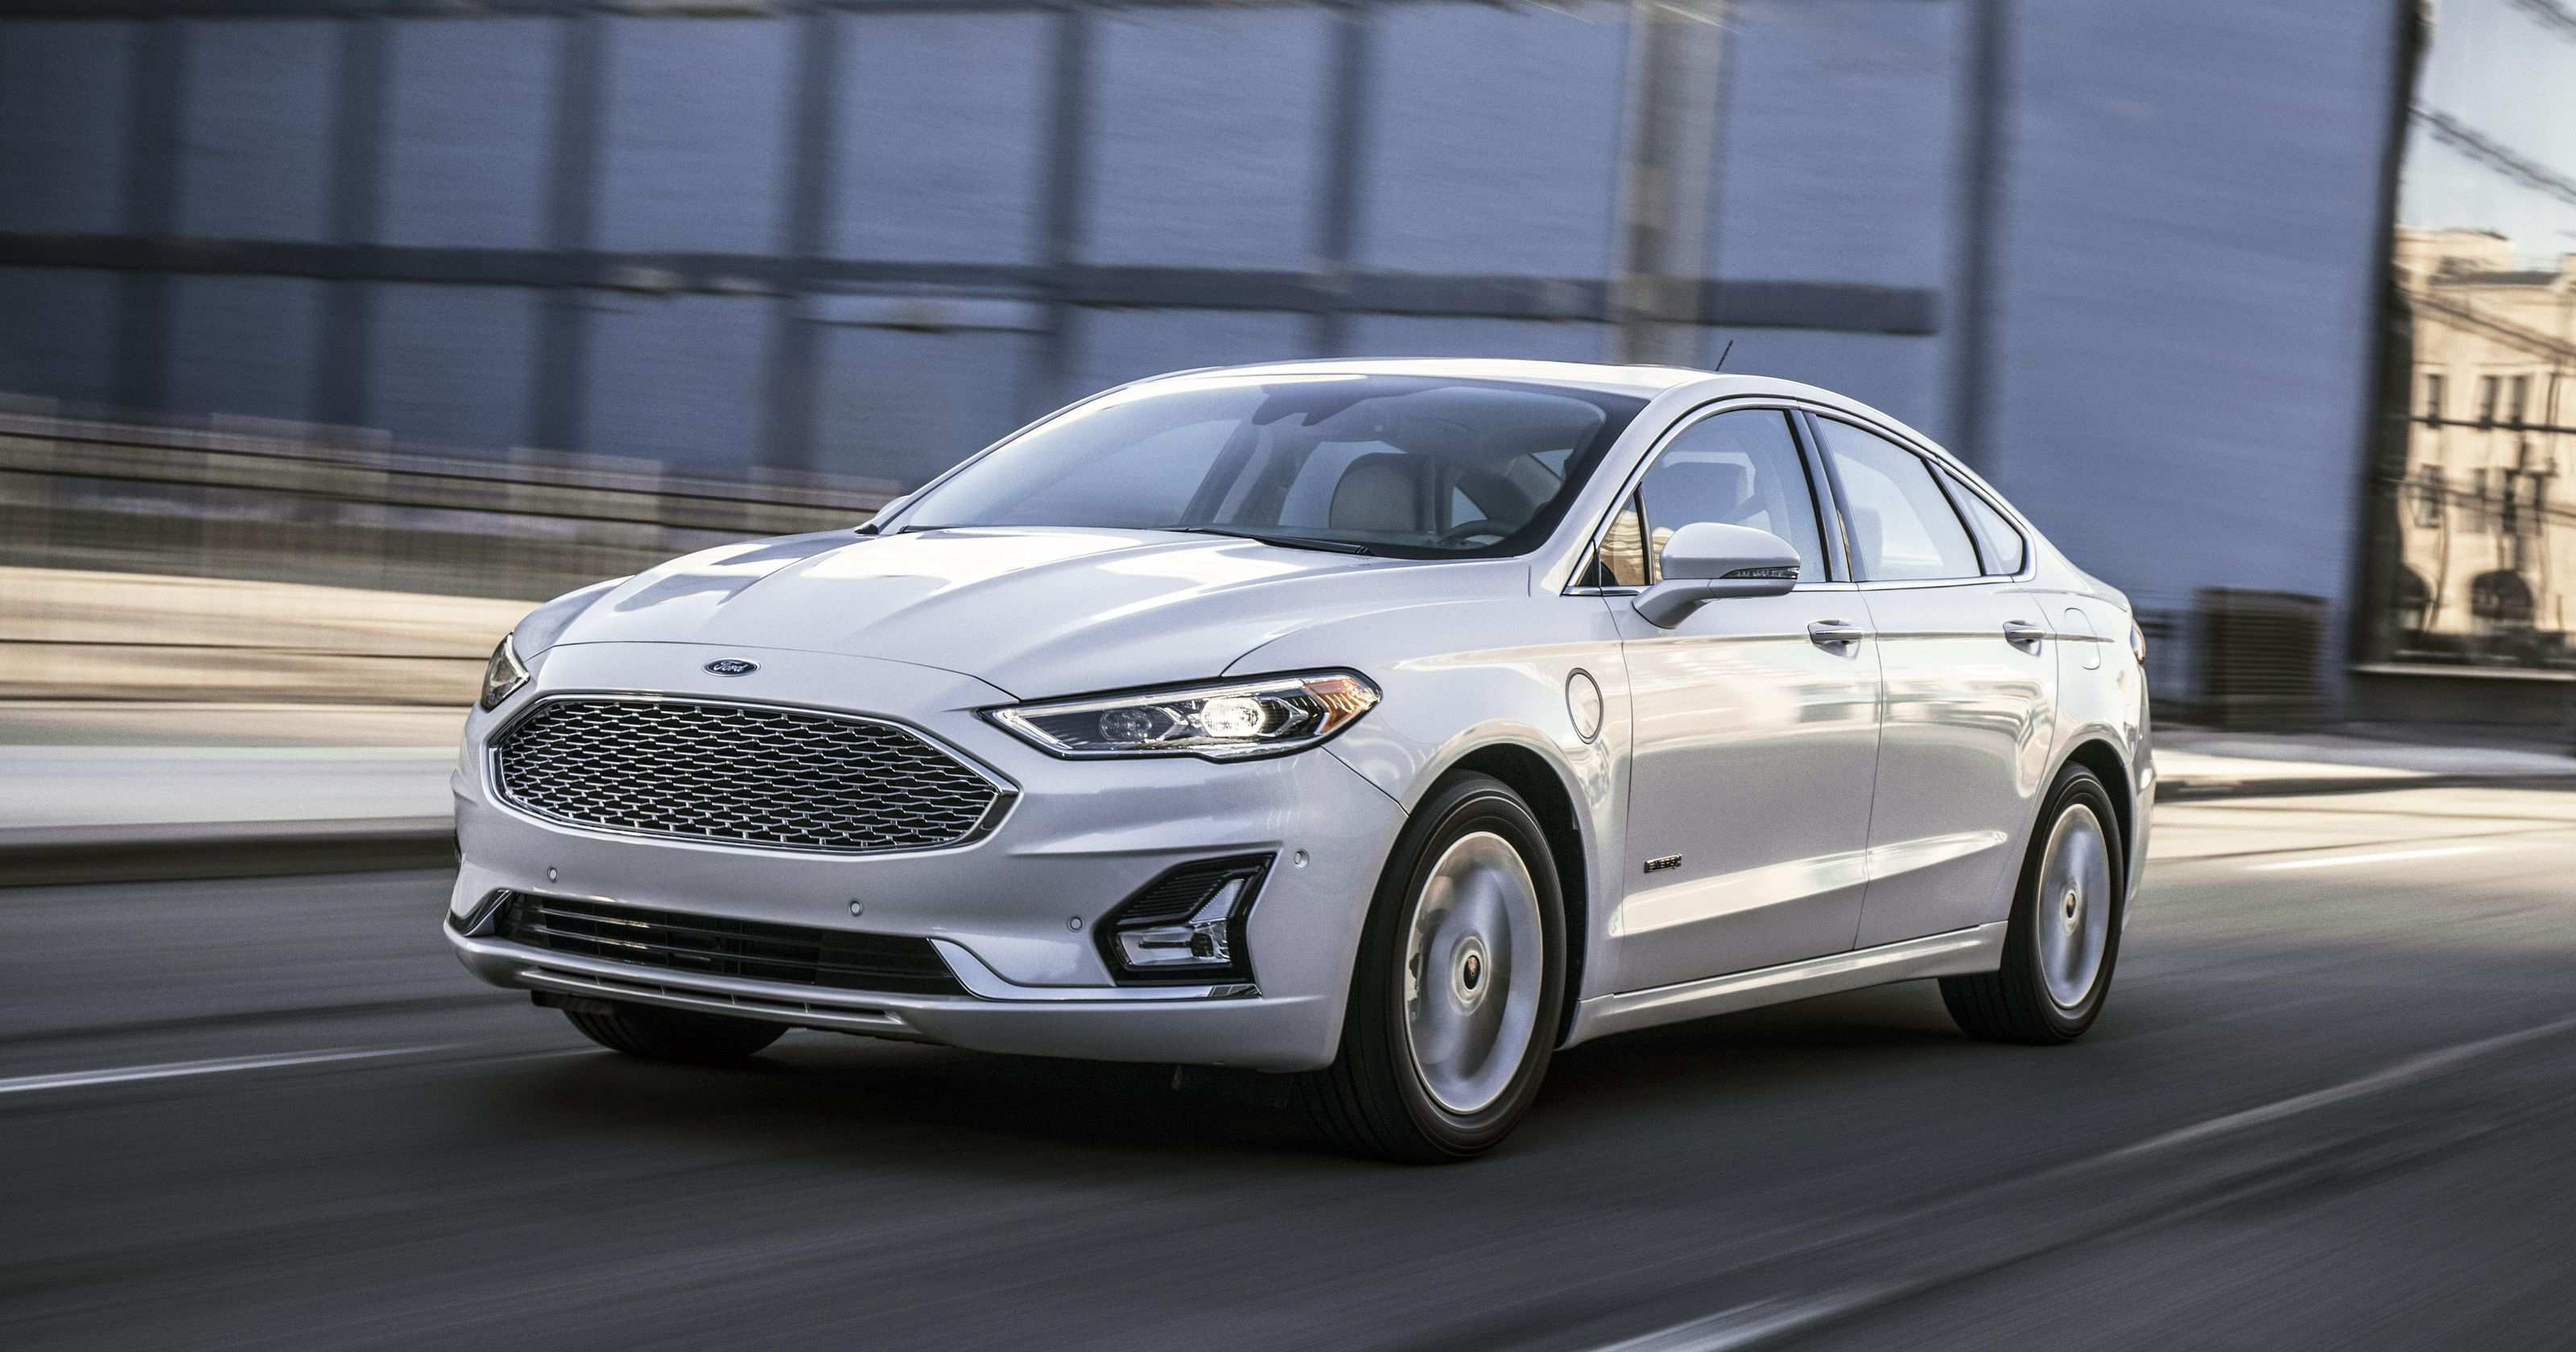 36 The Best 2020 Ford Fusion Prices